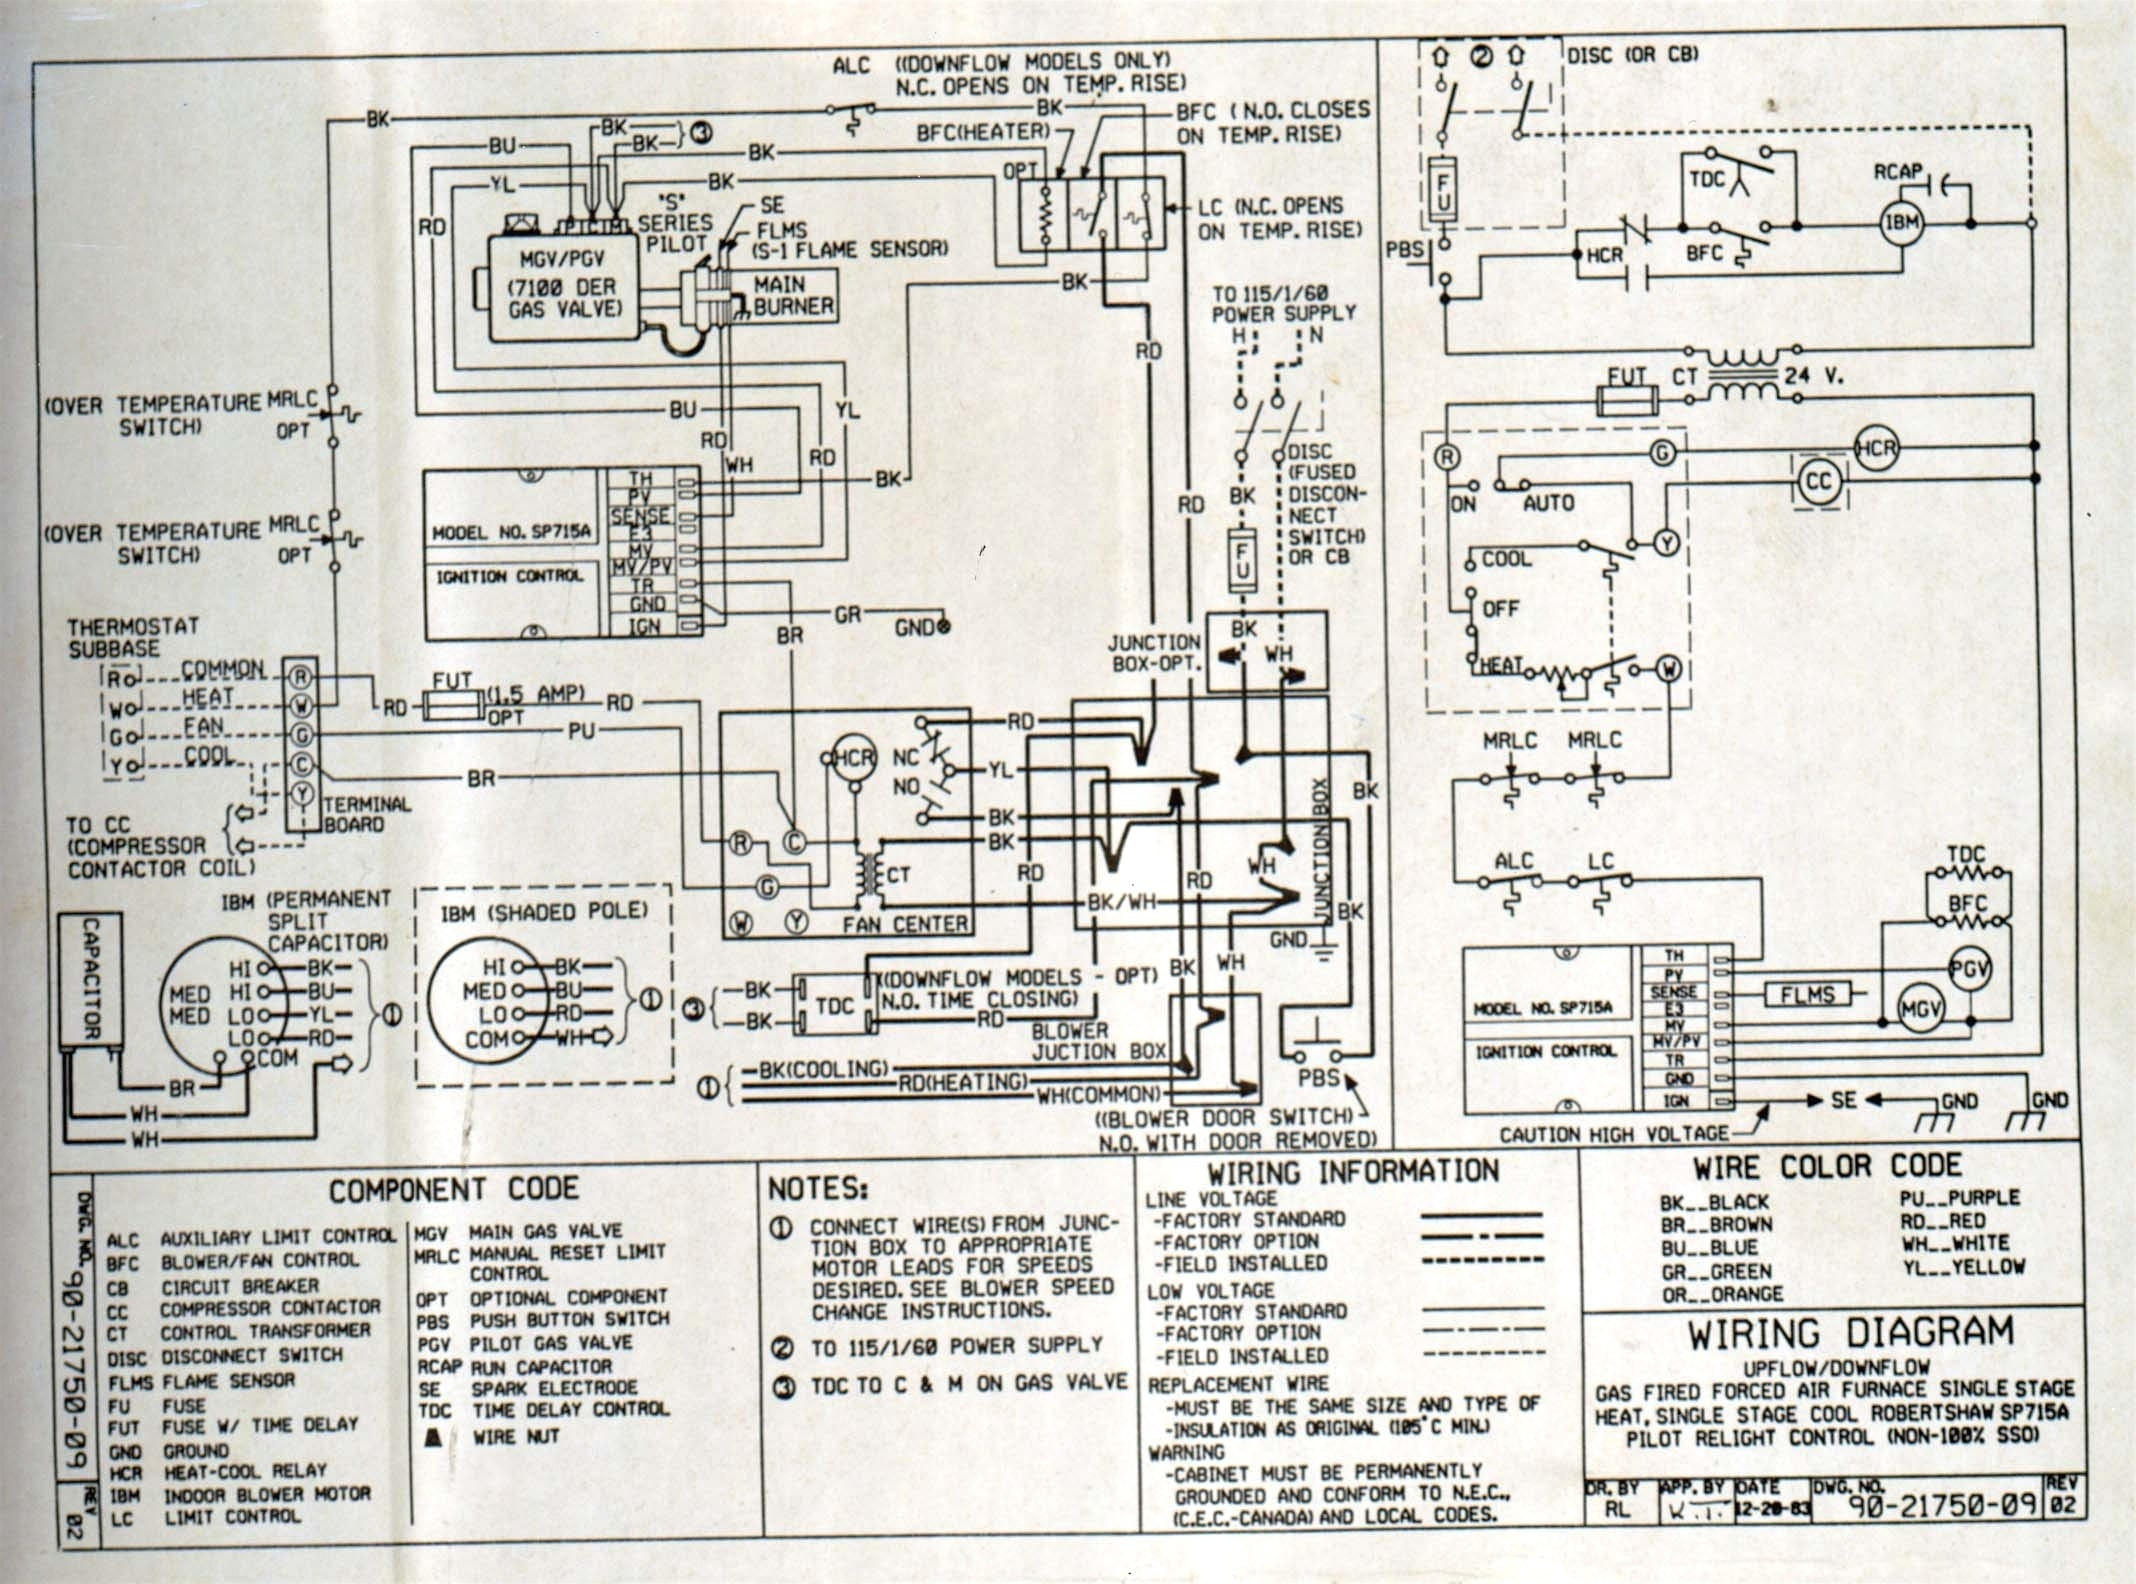 Armstrong Air Handler Wiring Diagram | Free Wiring Diagram